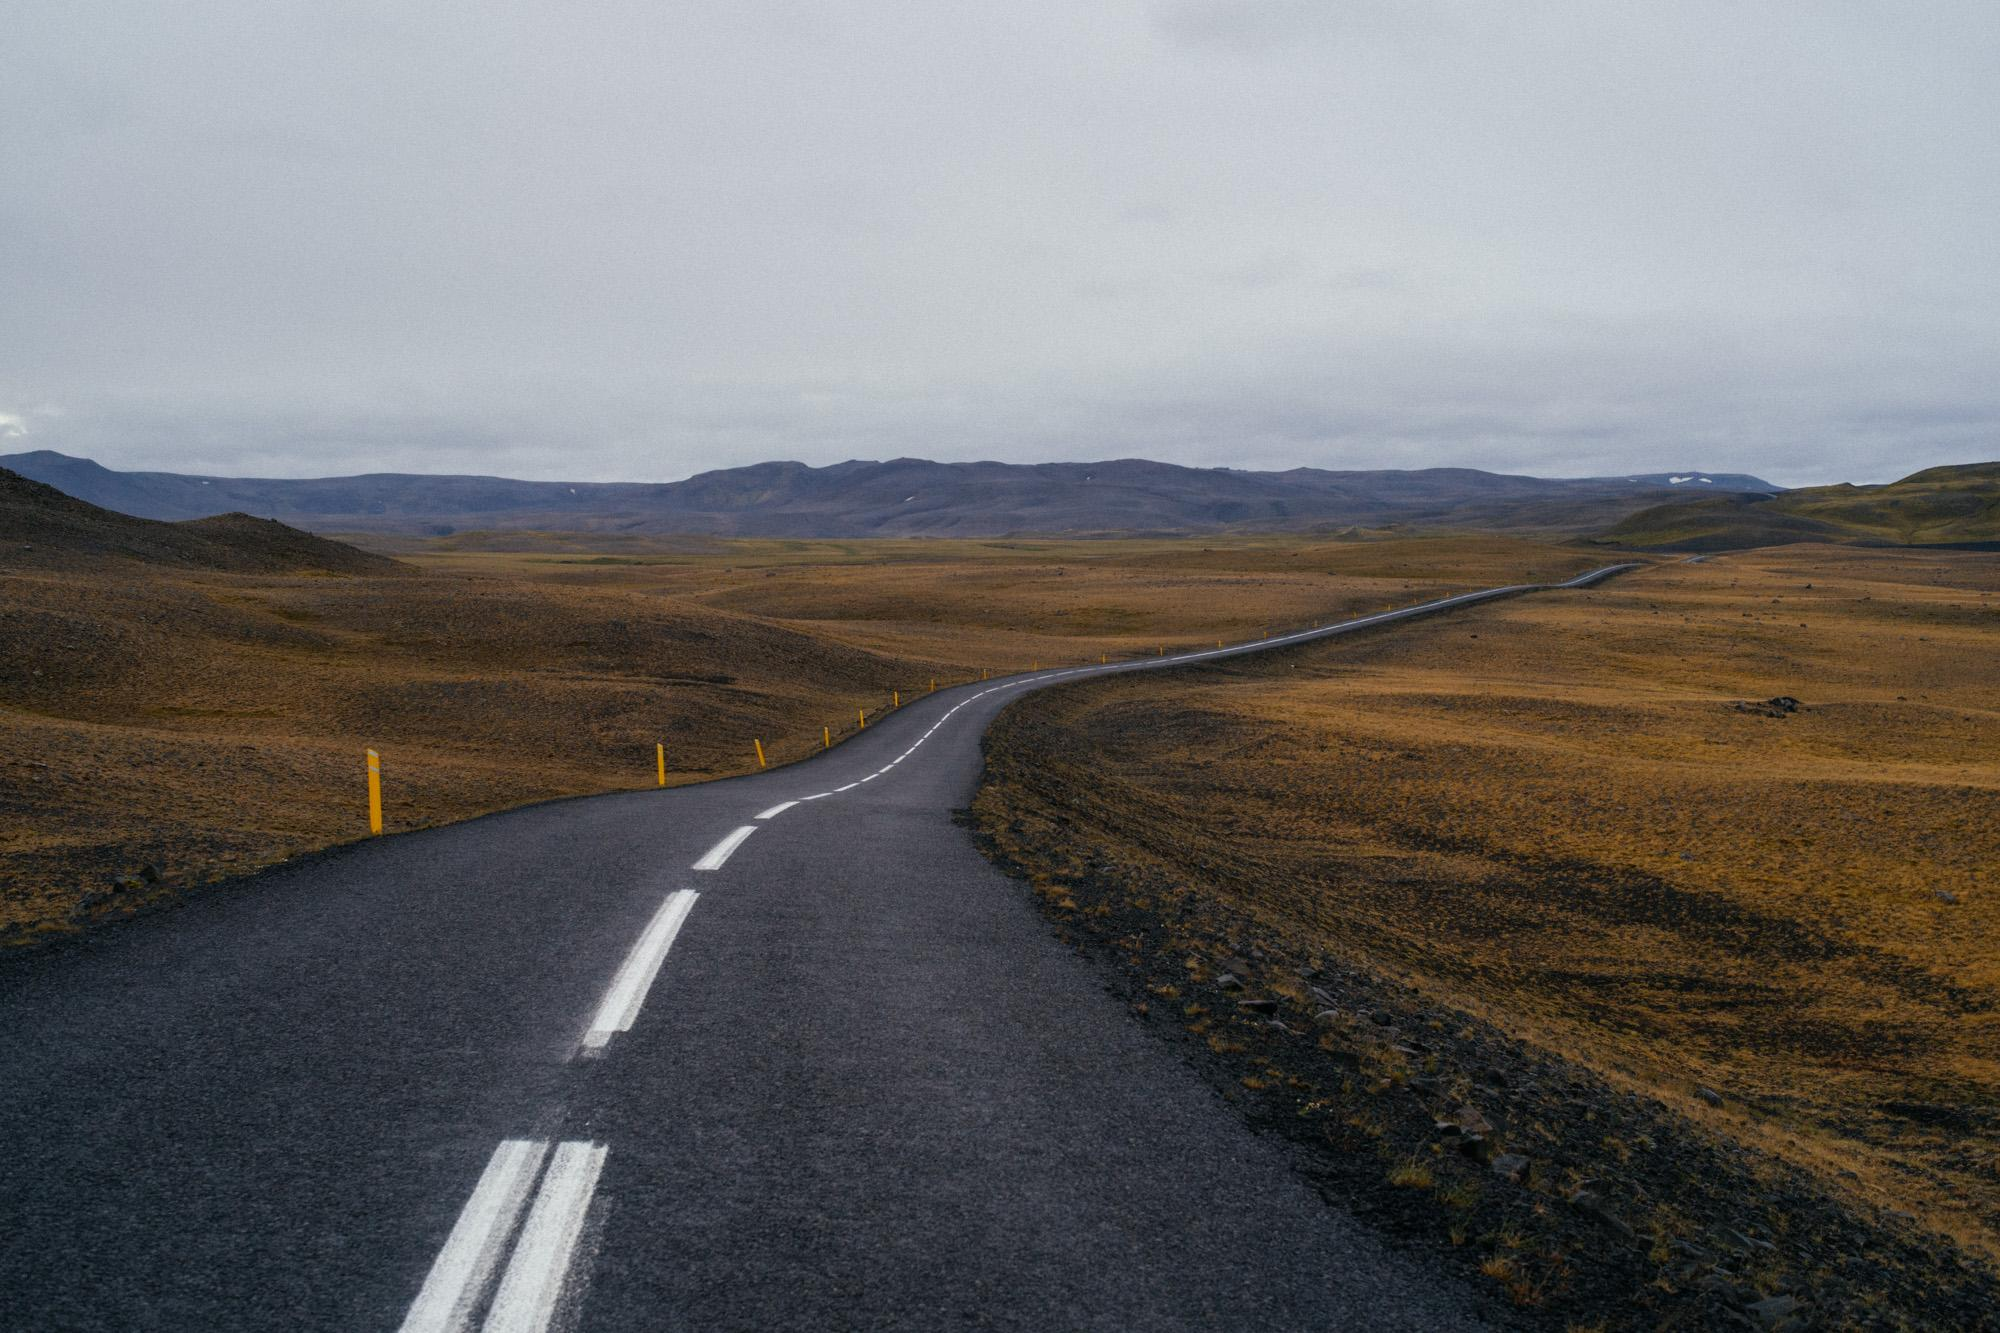 The long road to Landmannalaugar.